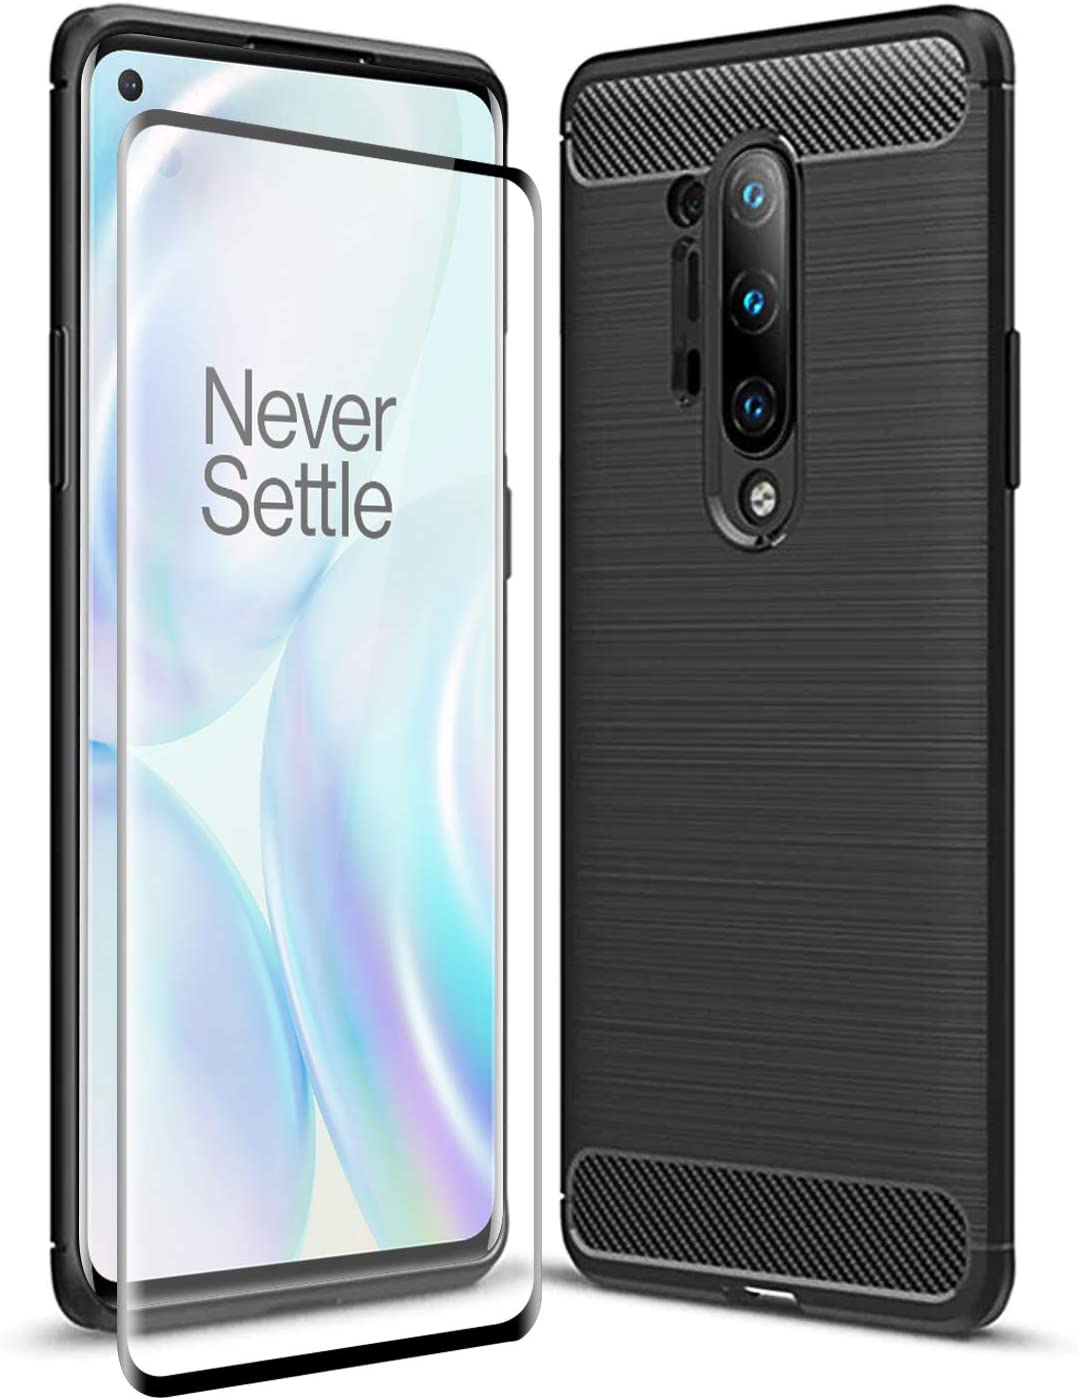 Olixar Case with Screen Protector for OnePlus 8 Pro, Stylish 2 in 1 Protection - Defend Your Phone & Screen from Drops, Shocks and Scratches Sentinel - Black